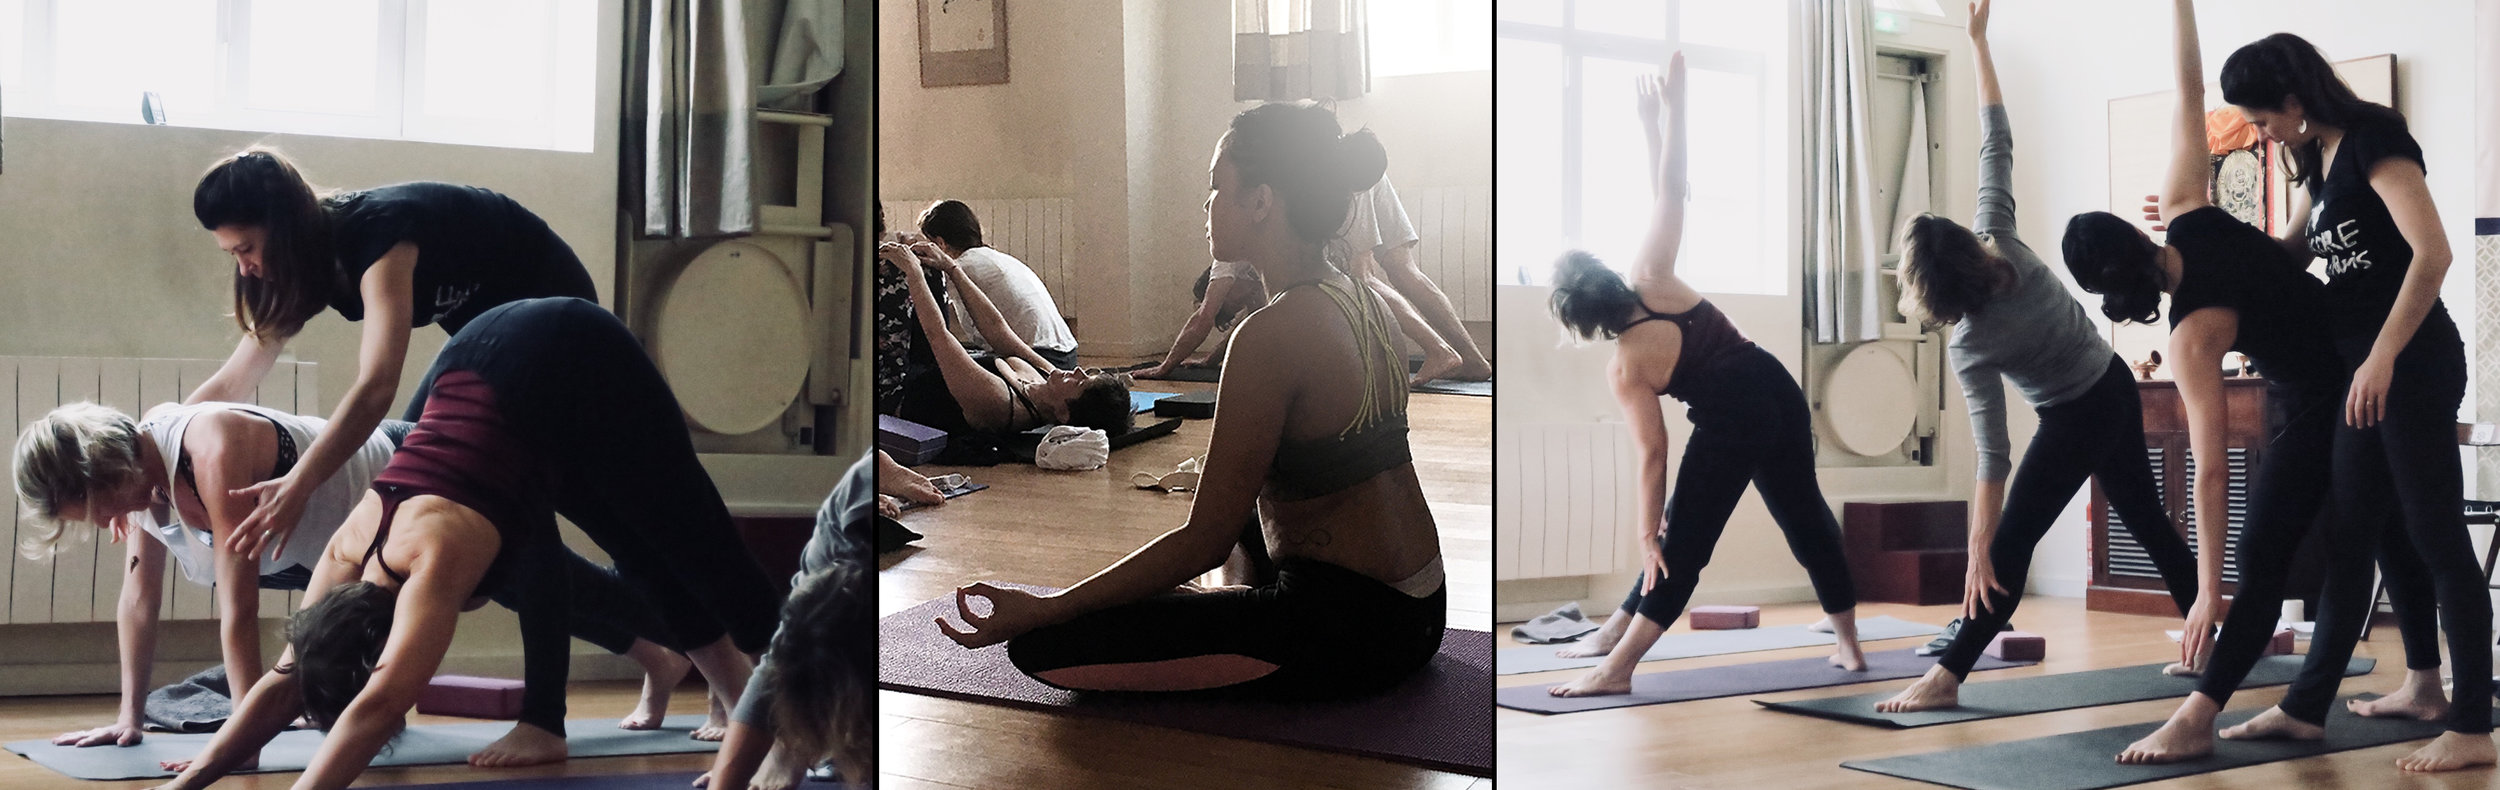 Mysore Style  is considered the ideal and safest way for a beginner to learn Ashtanga Yoga, since the practice is developed according to the constitution, readiness and ability of each individual.